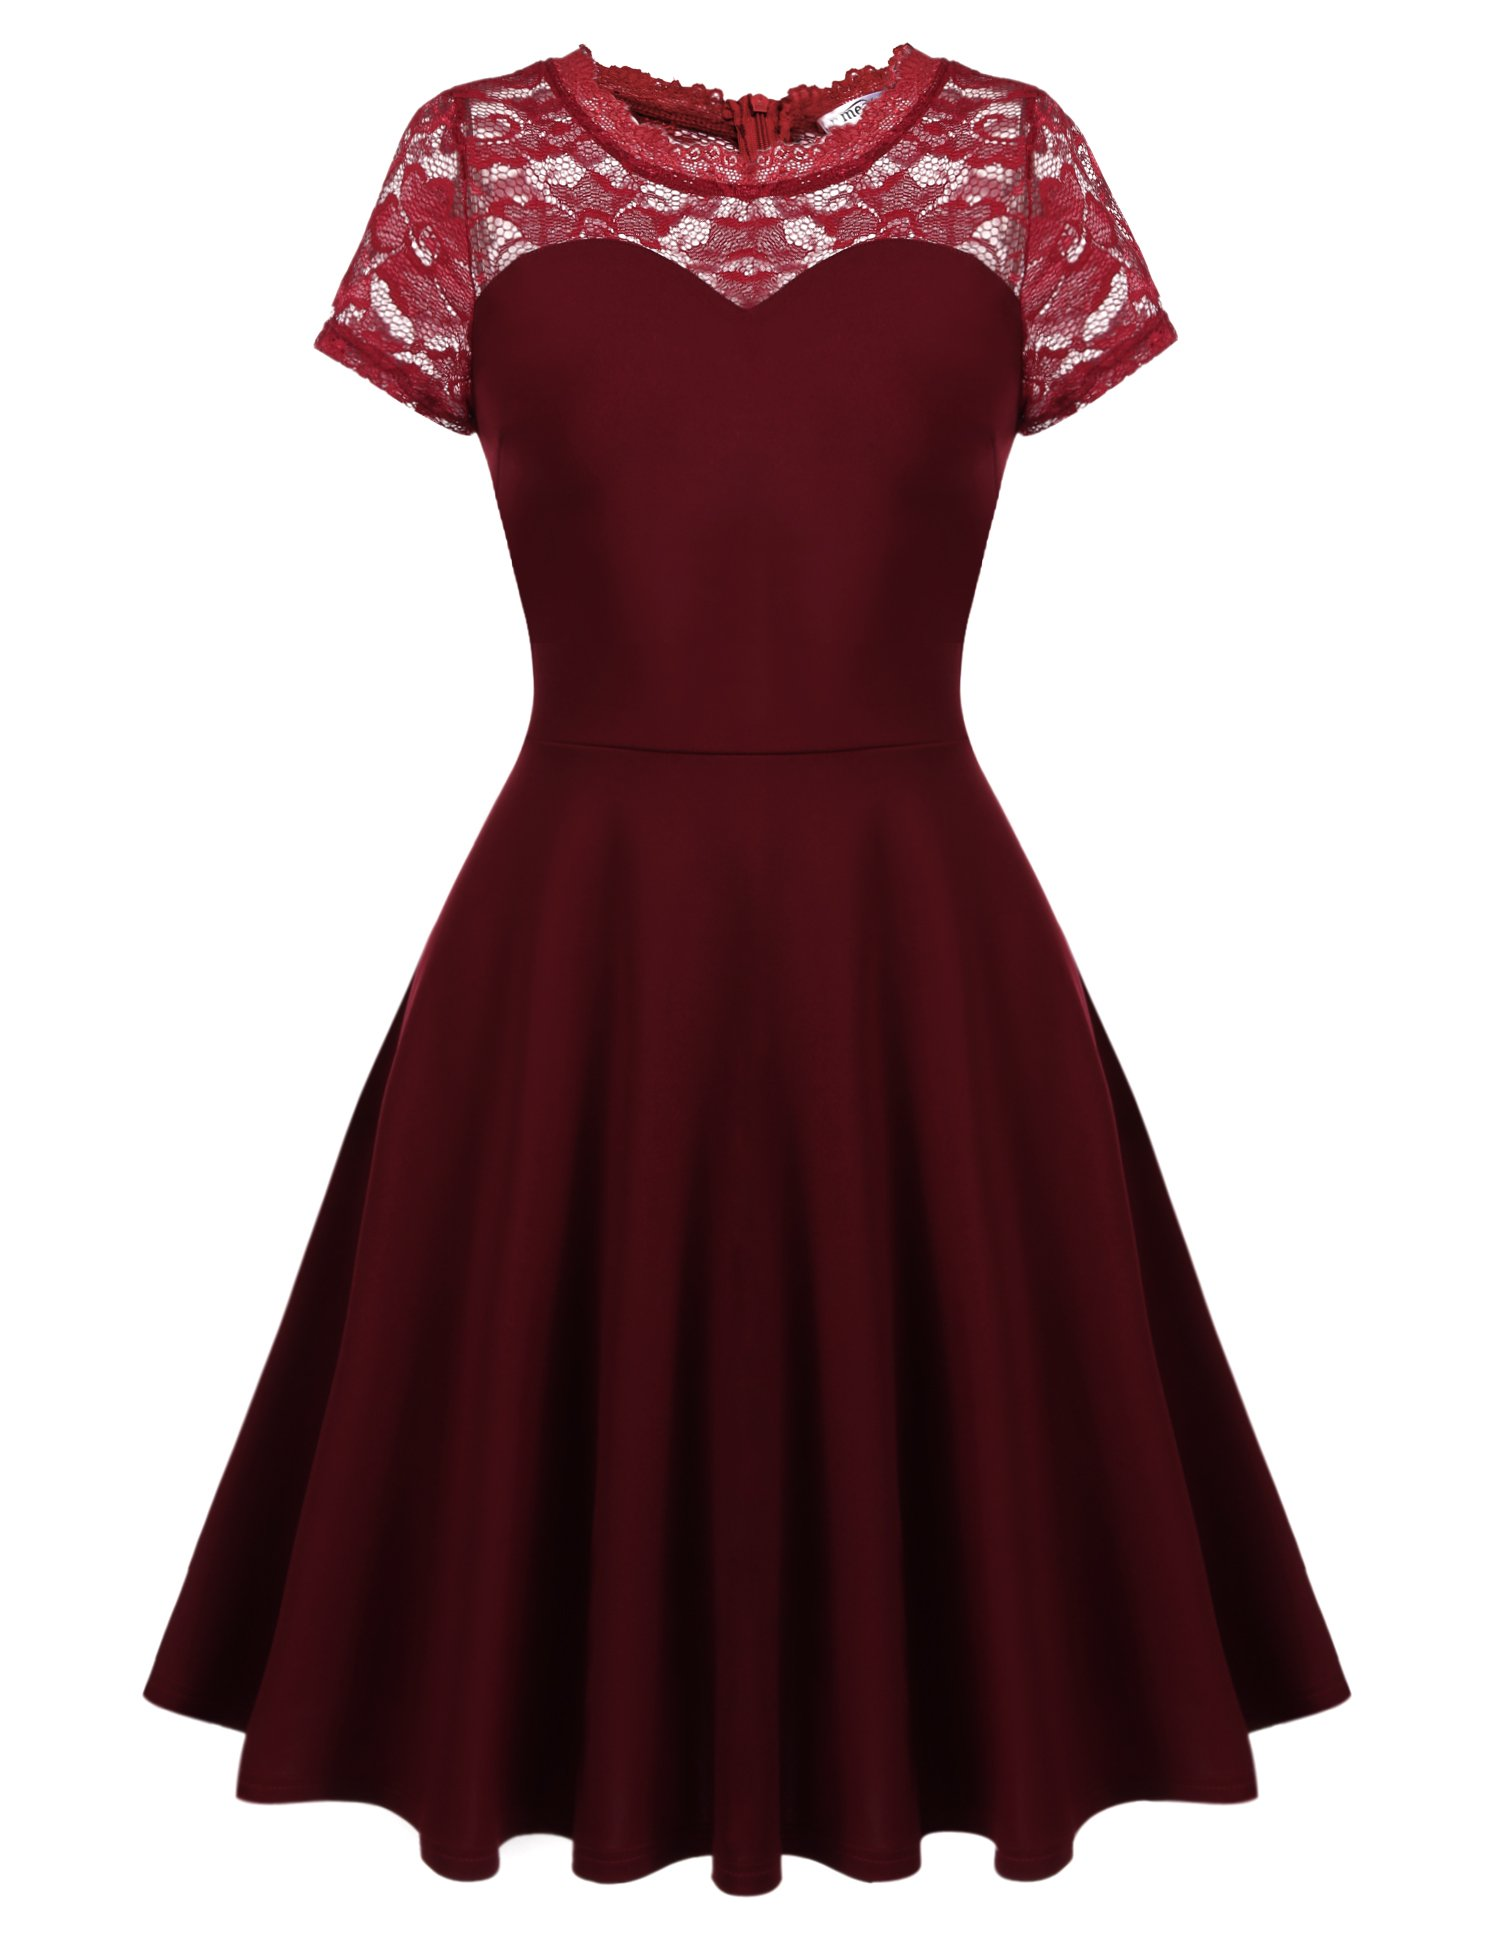 Meaneor Women's Vintage Floral Lace Contrast A-line Cocktail Swing Dress